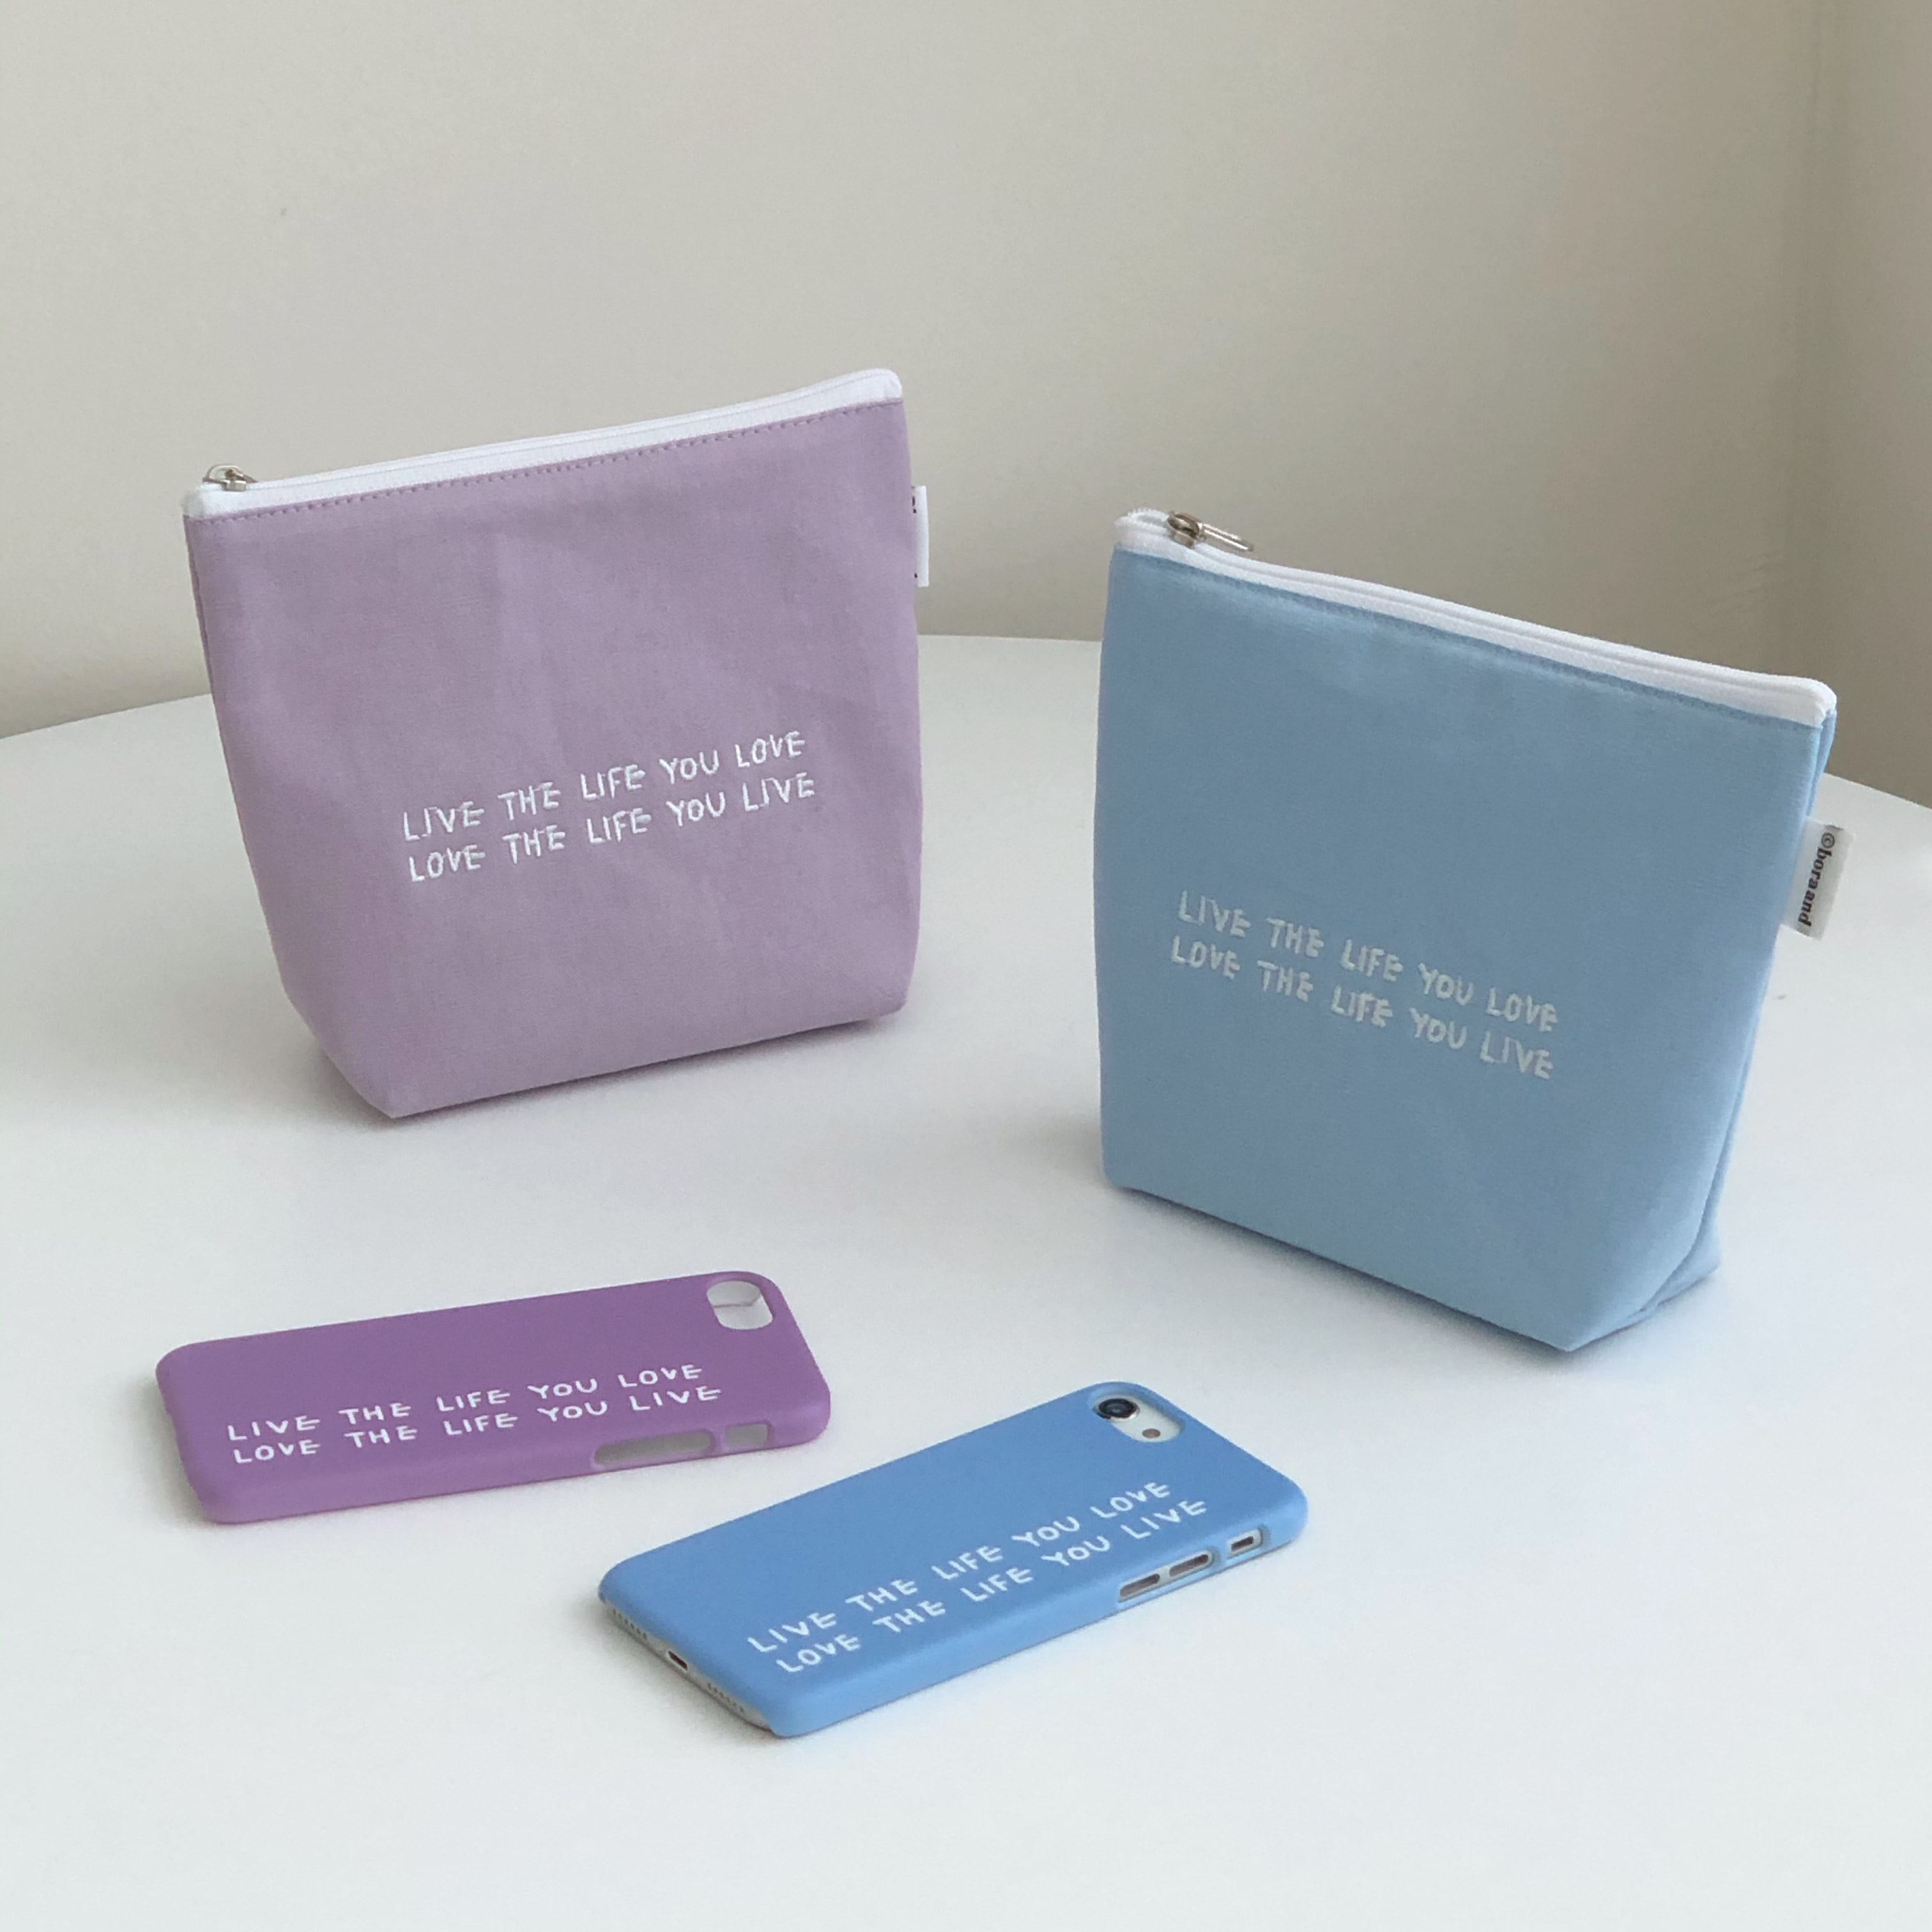 Live the life you love pouch (2차 재입고)